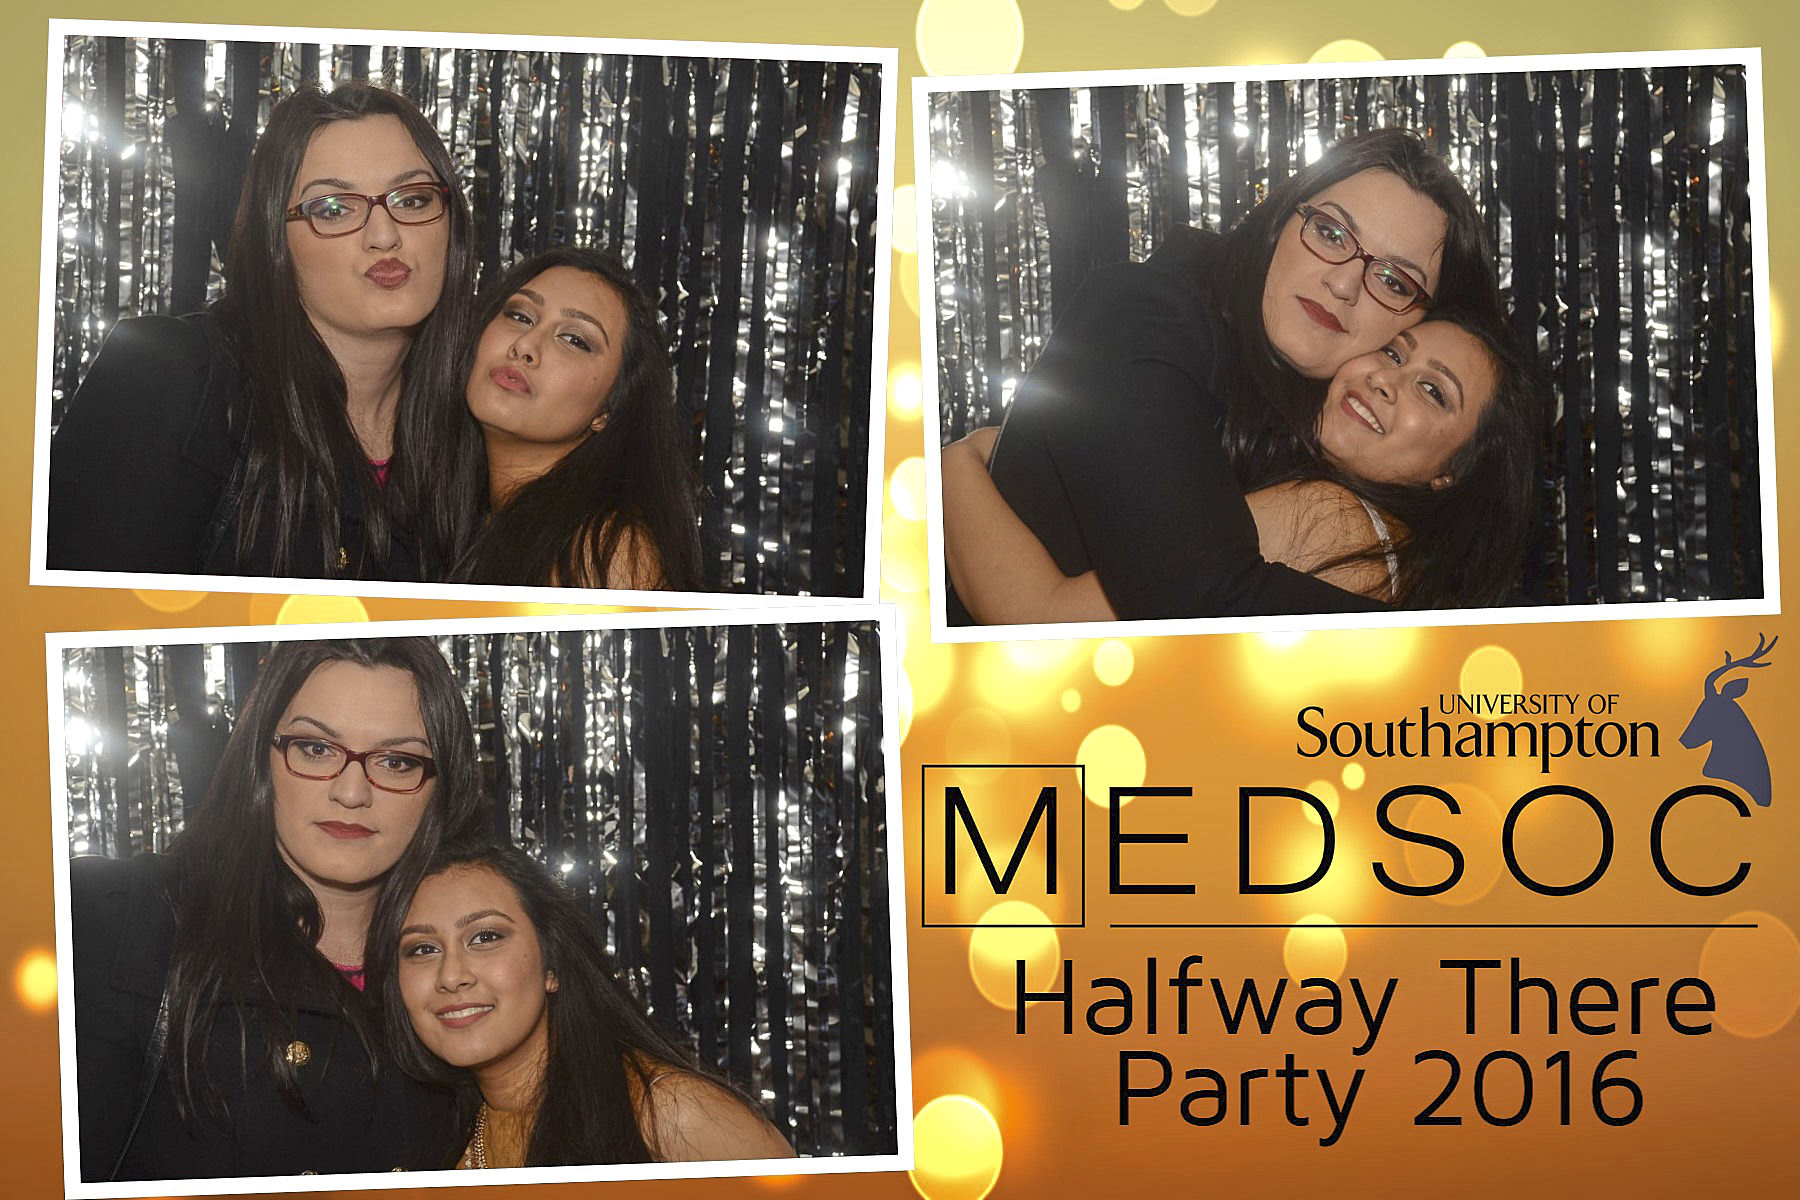 MedSoc Halfway There Party 2016 DS001450.jpg